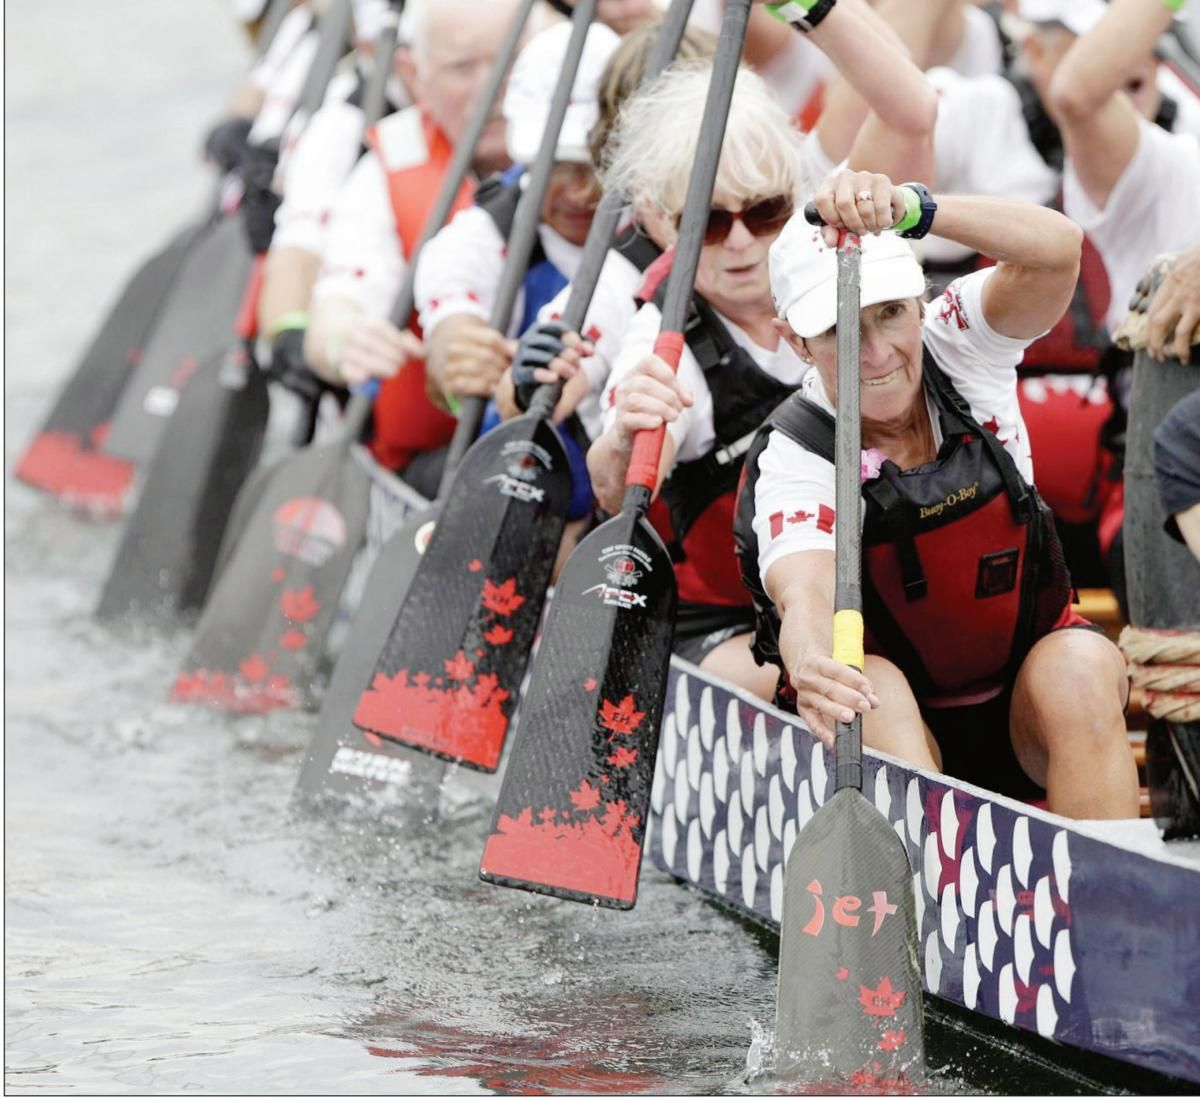 Visually impaired Pam Pospisil, Dragon Boat rower, uses boat's rock to guide her strokes.